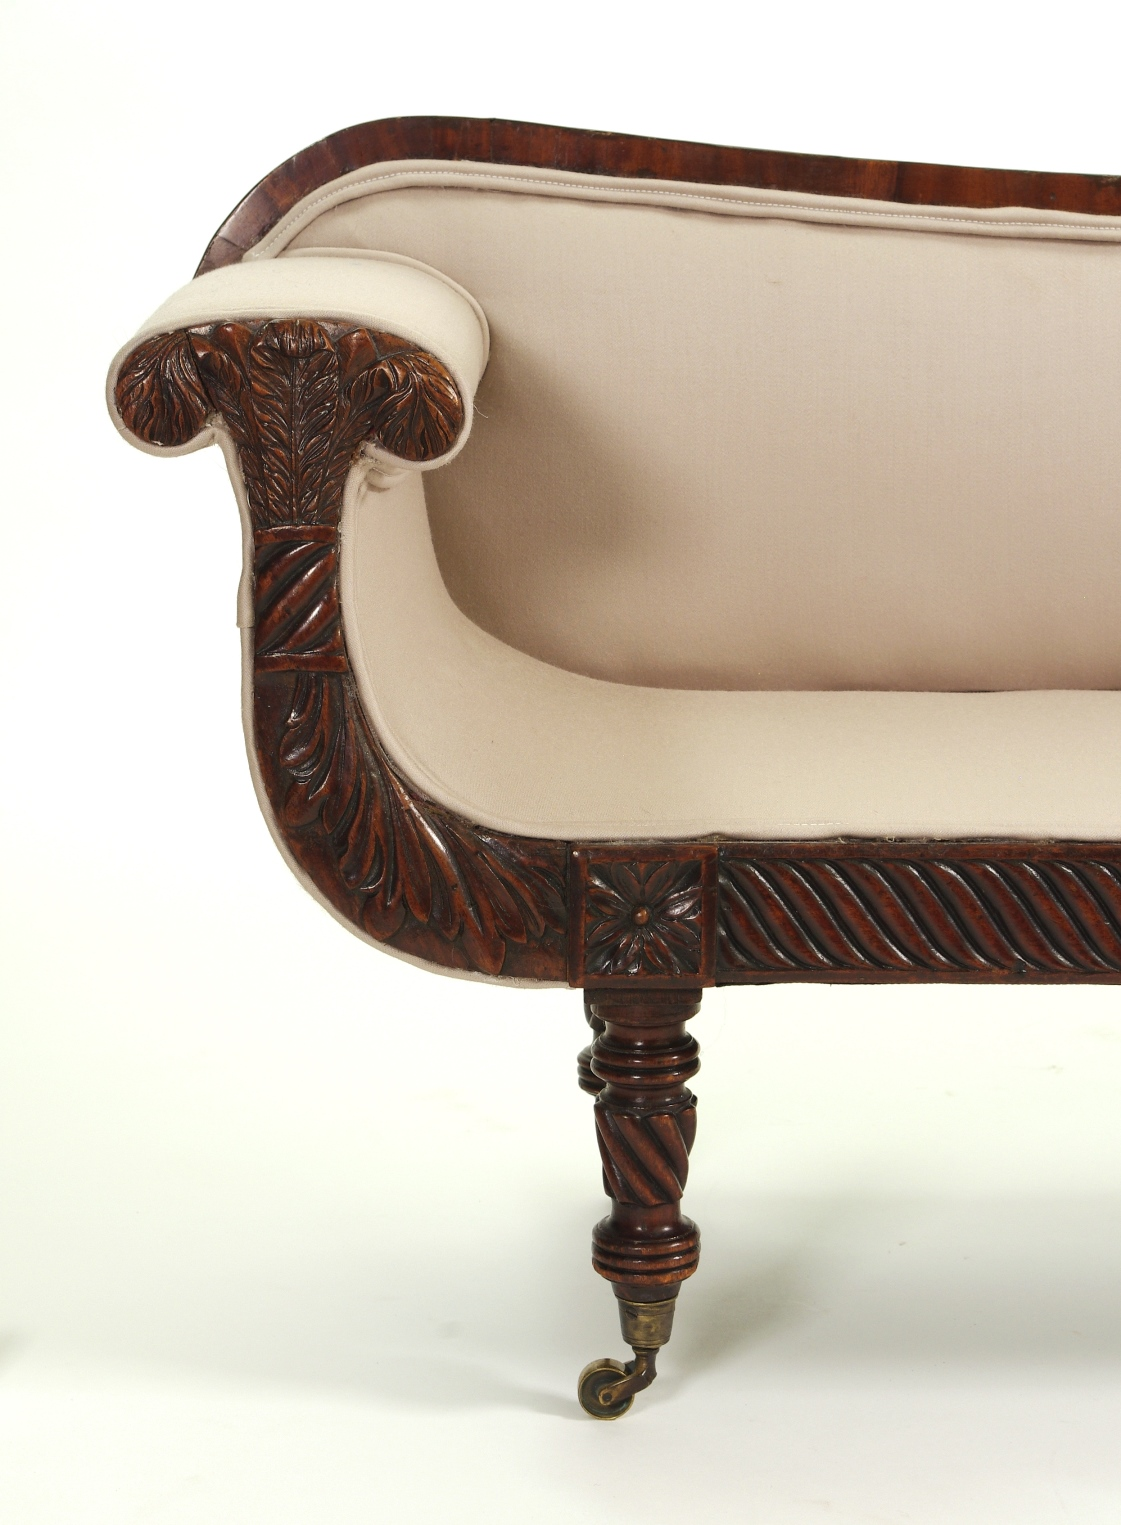 View 7: Regency Mahogany Child's Sofa, c. 1820